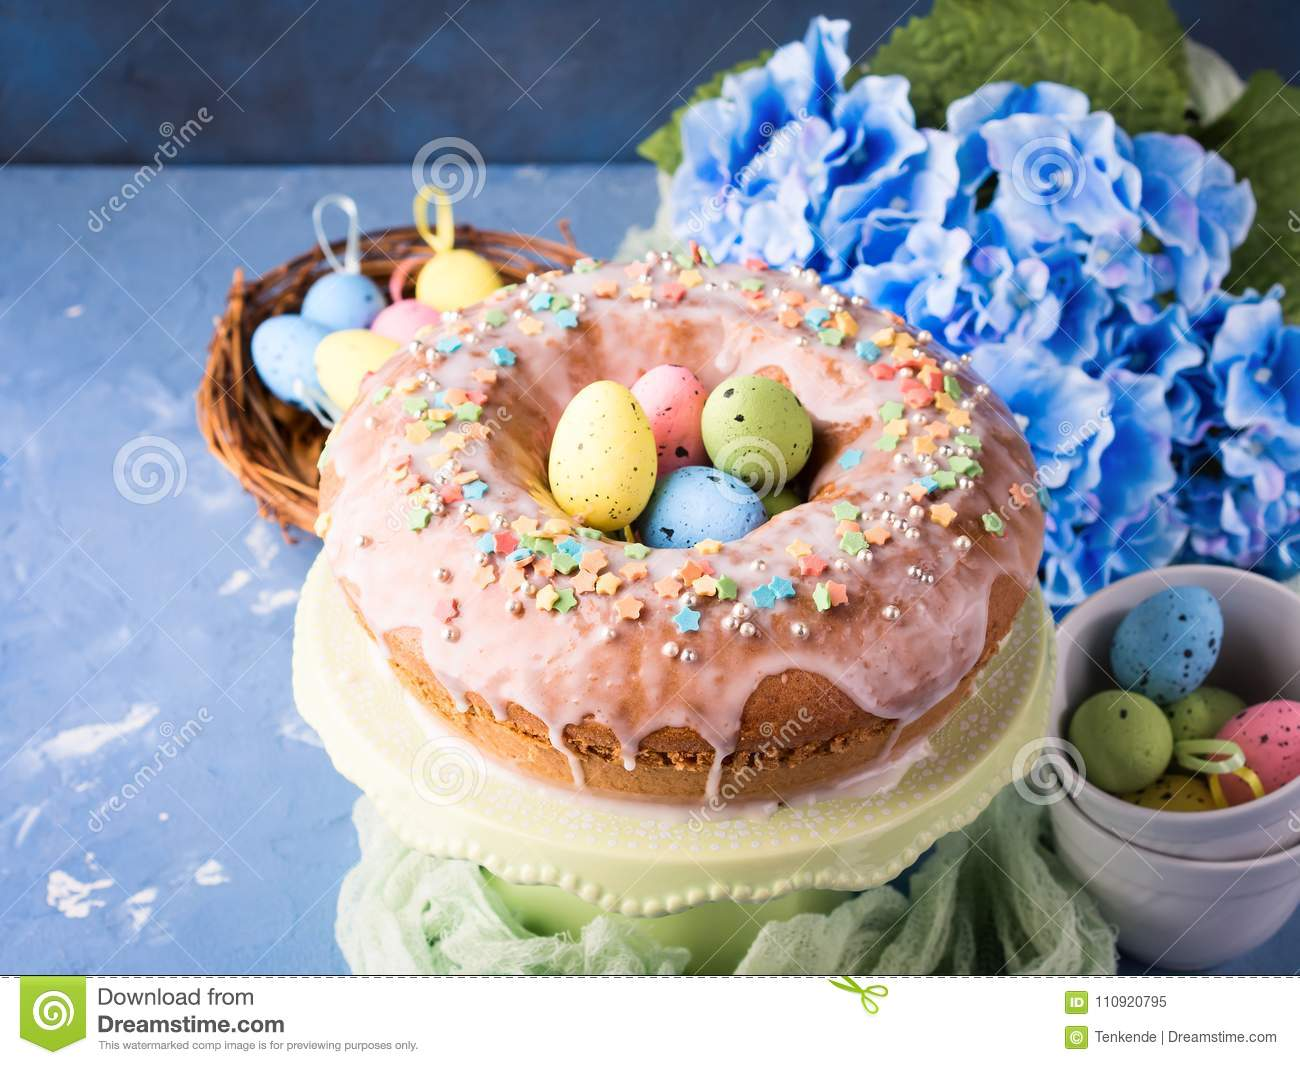 Easter Sweet Cake With Sugar Frosting And Holiday Decor Stock Image